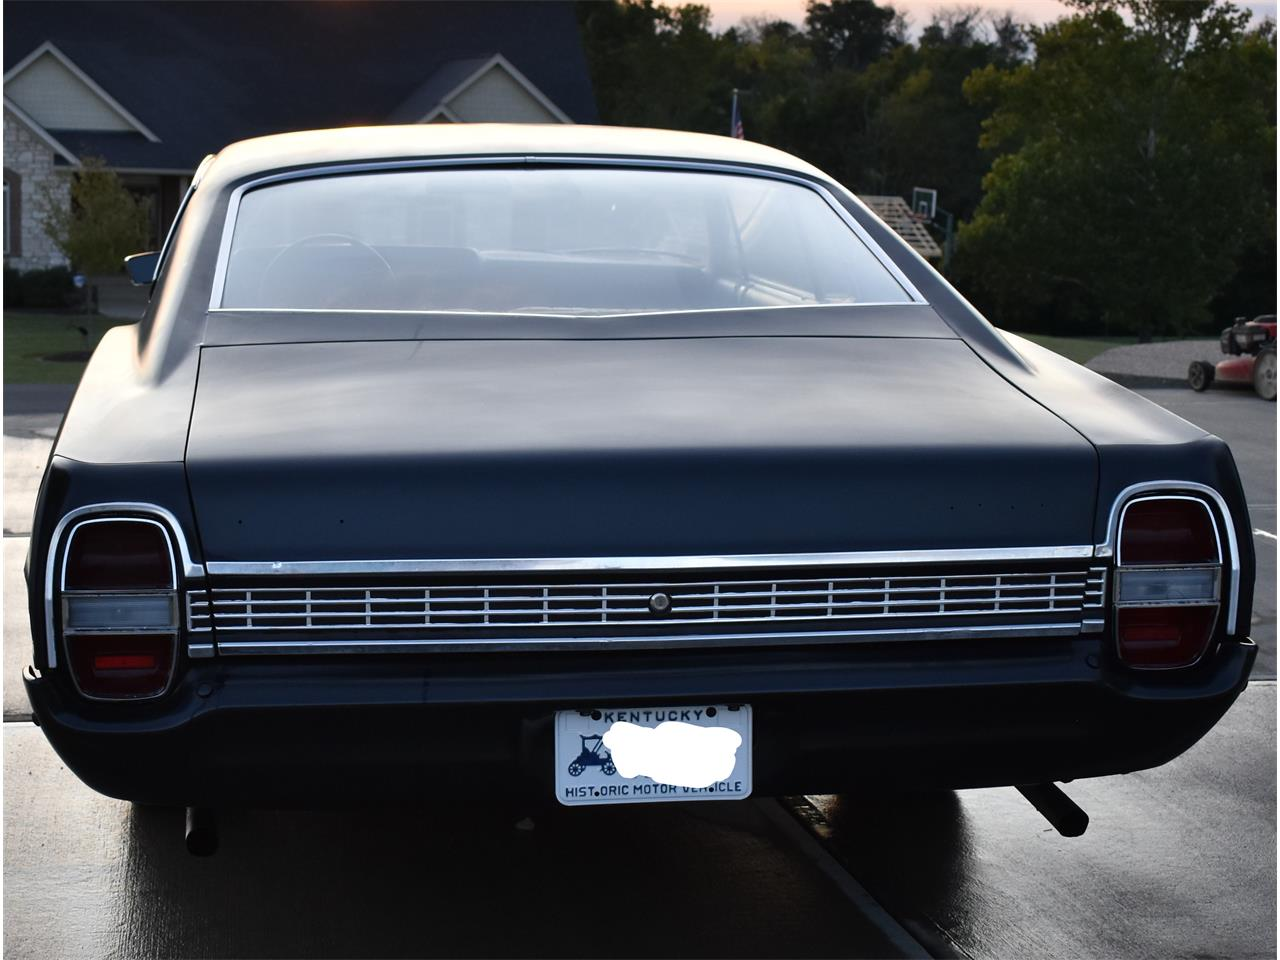 1968 Ford Galaxie 500 (CC-1411252) for sale in Taylorsville, Kentucky